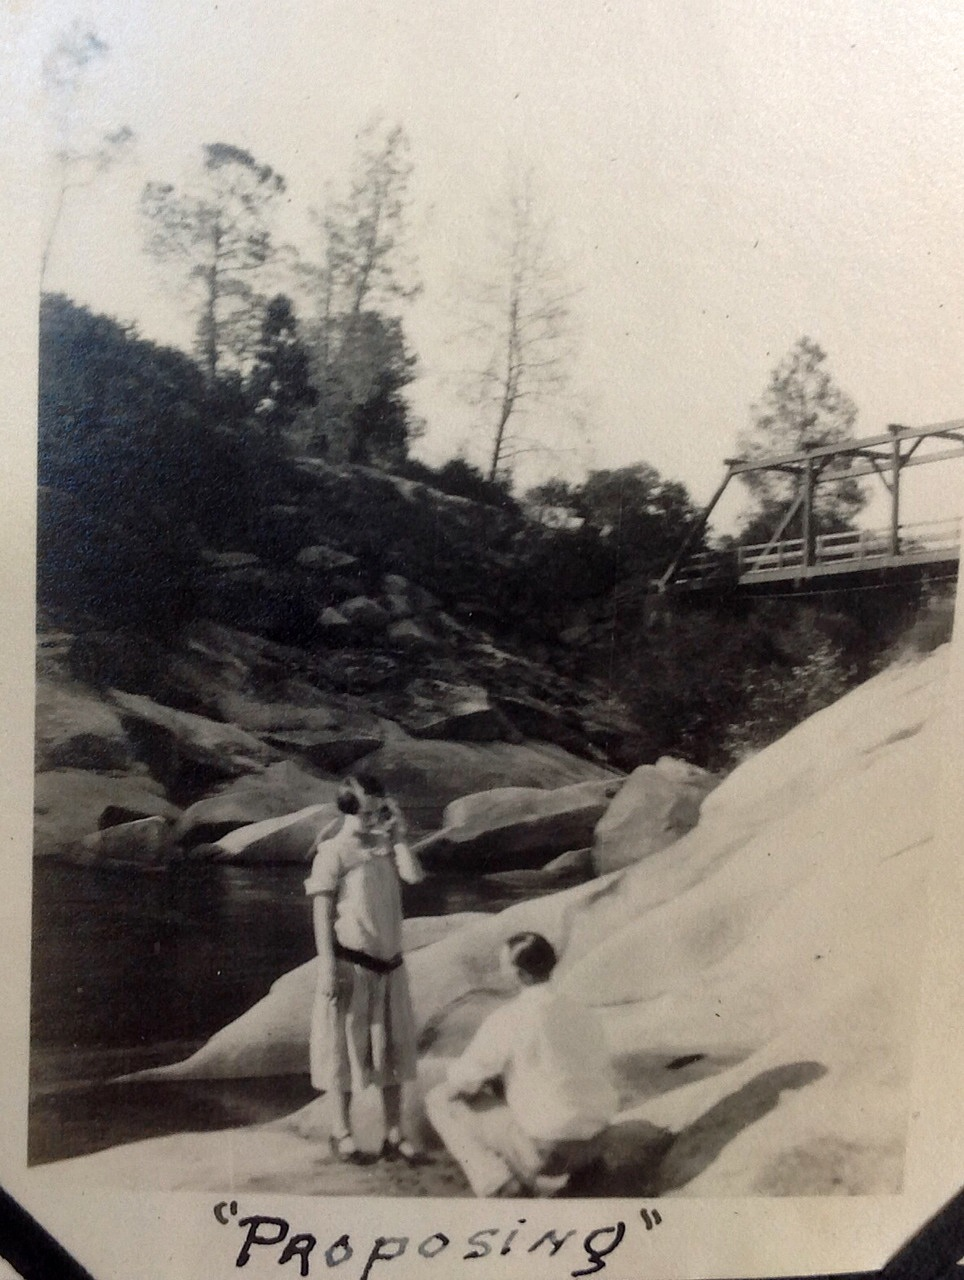 History Mystery 26 - Proposing at bridge - photo courtesy Dorothy Philps